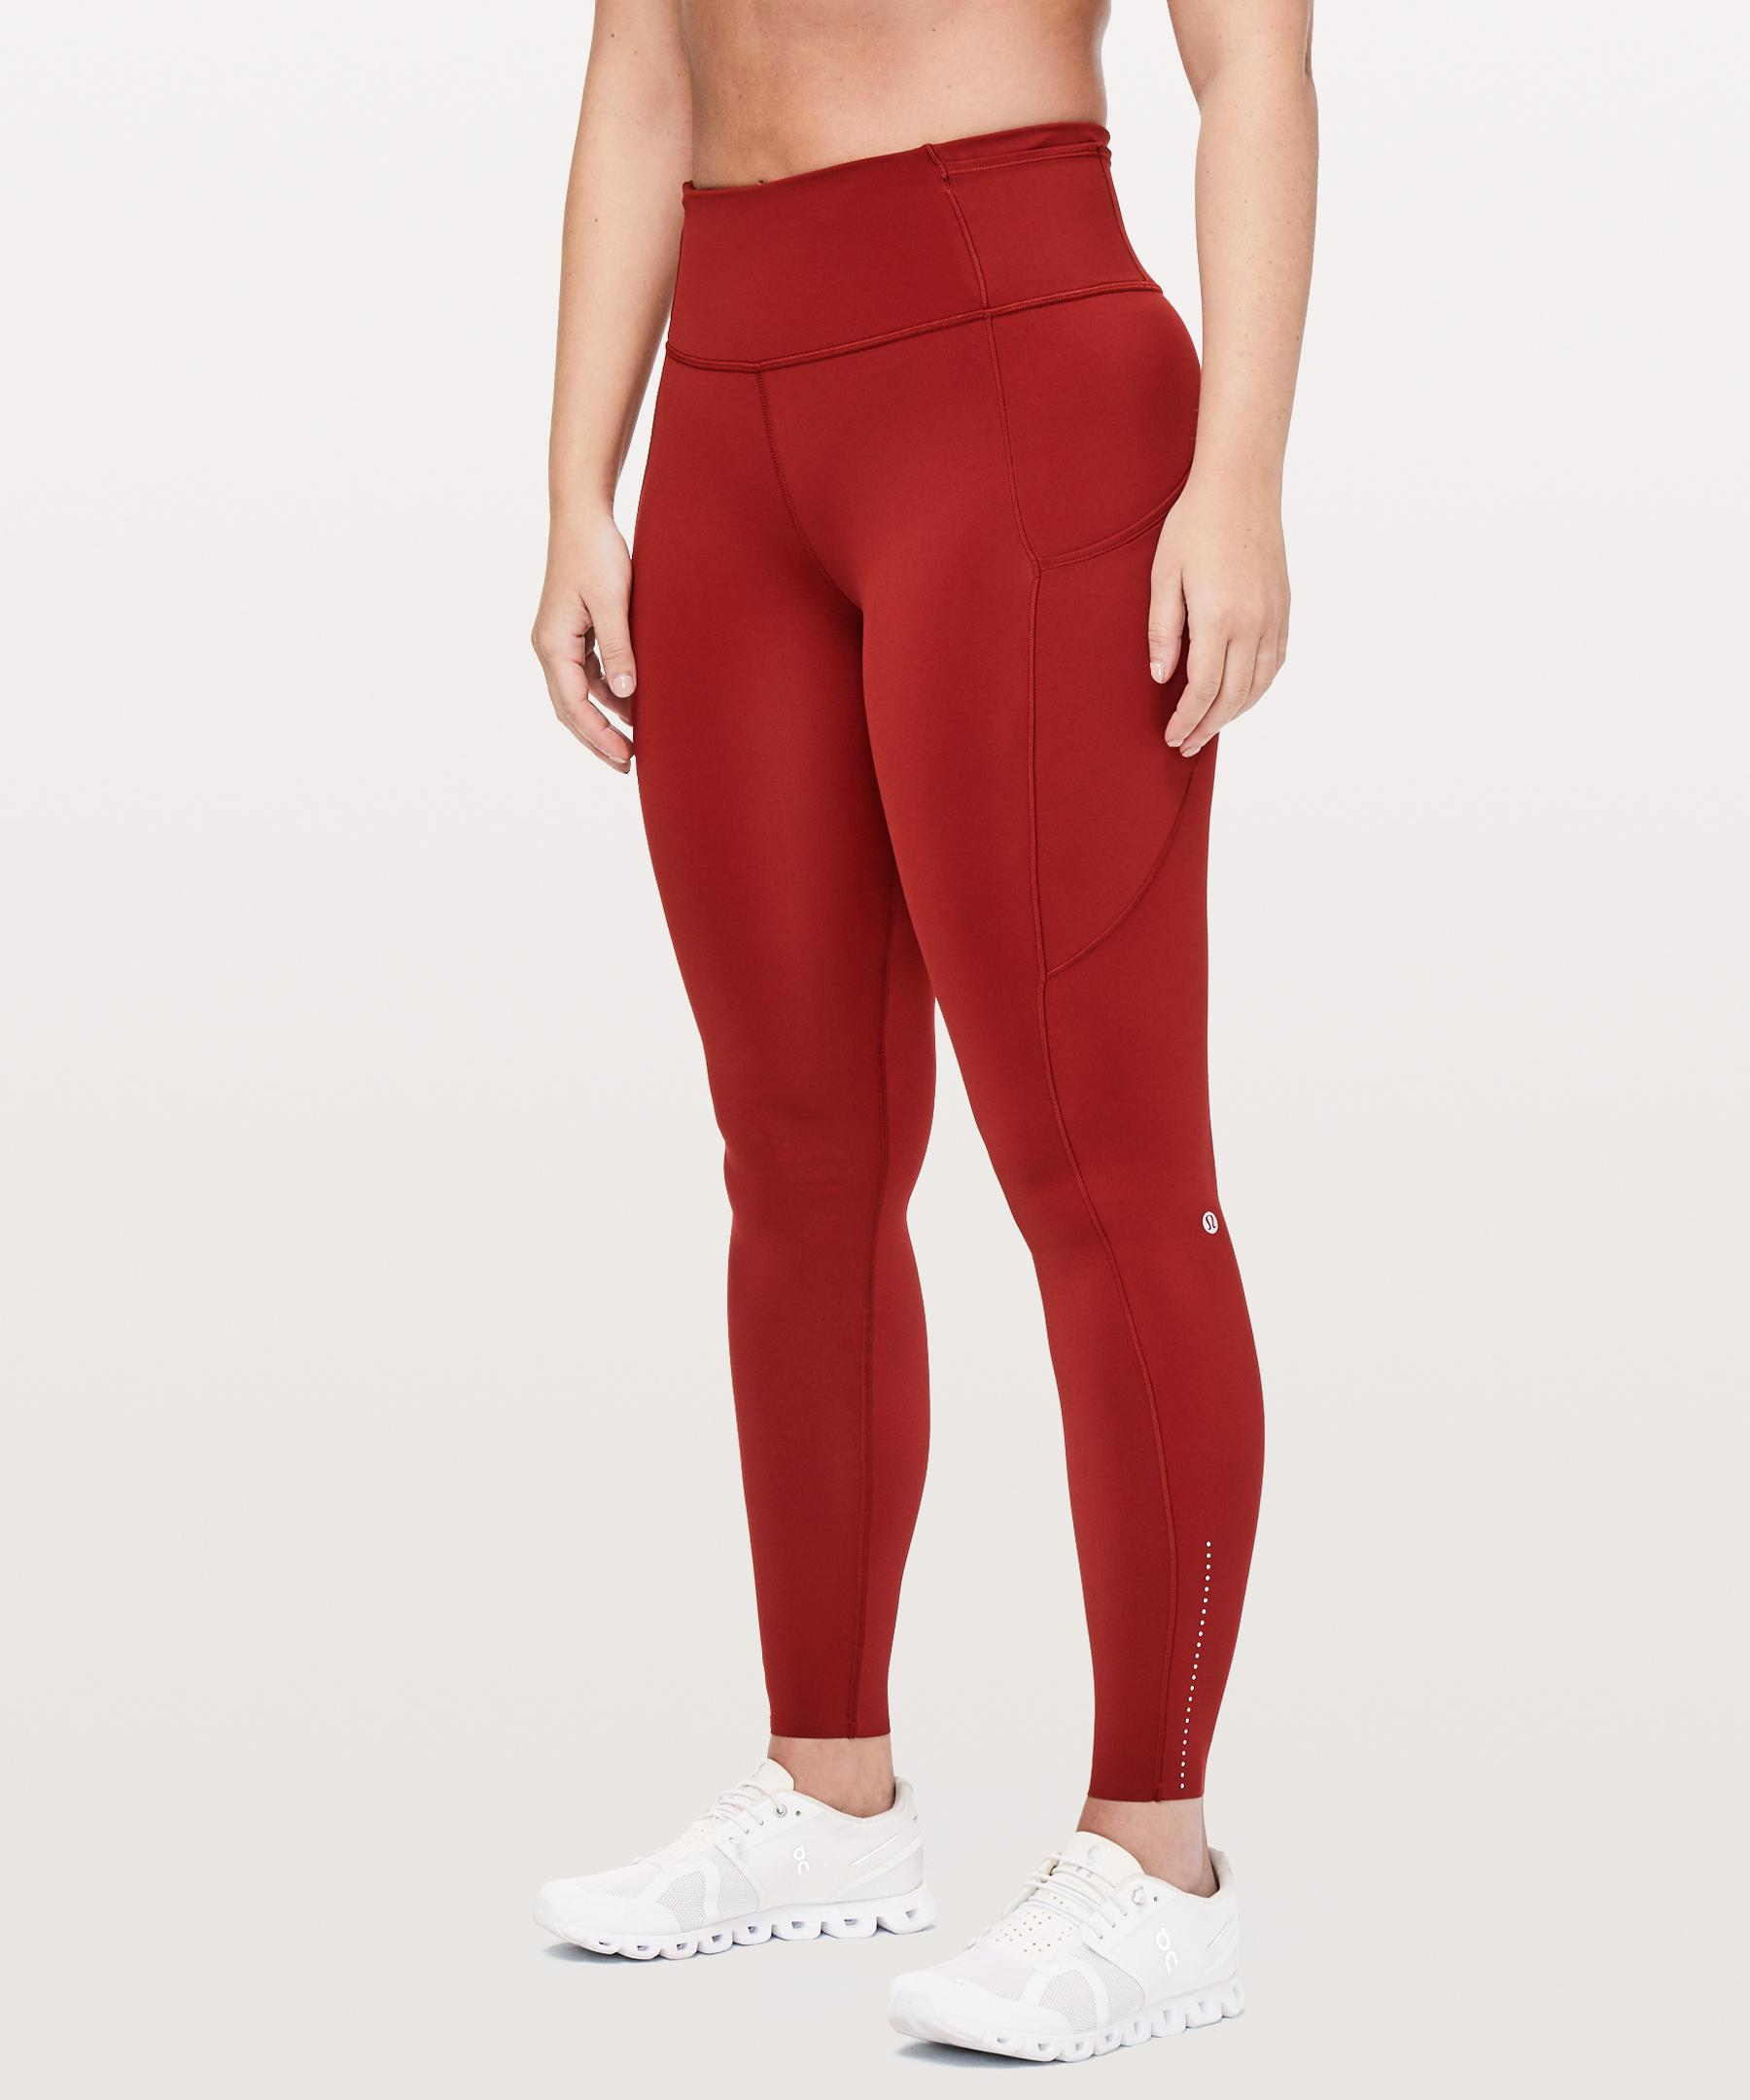 abb46854508a74 lululemon athletica Fast And Free Tight in Red - Lyst